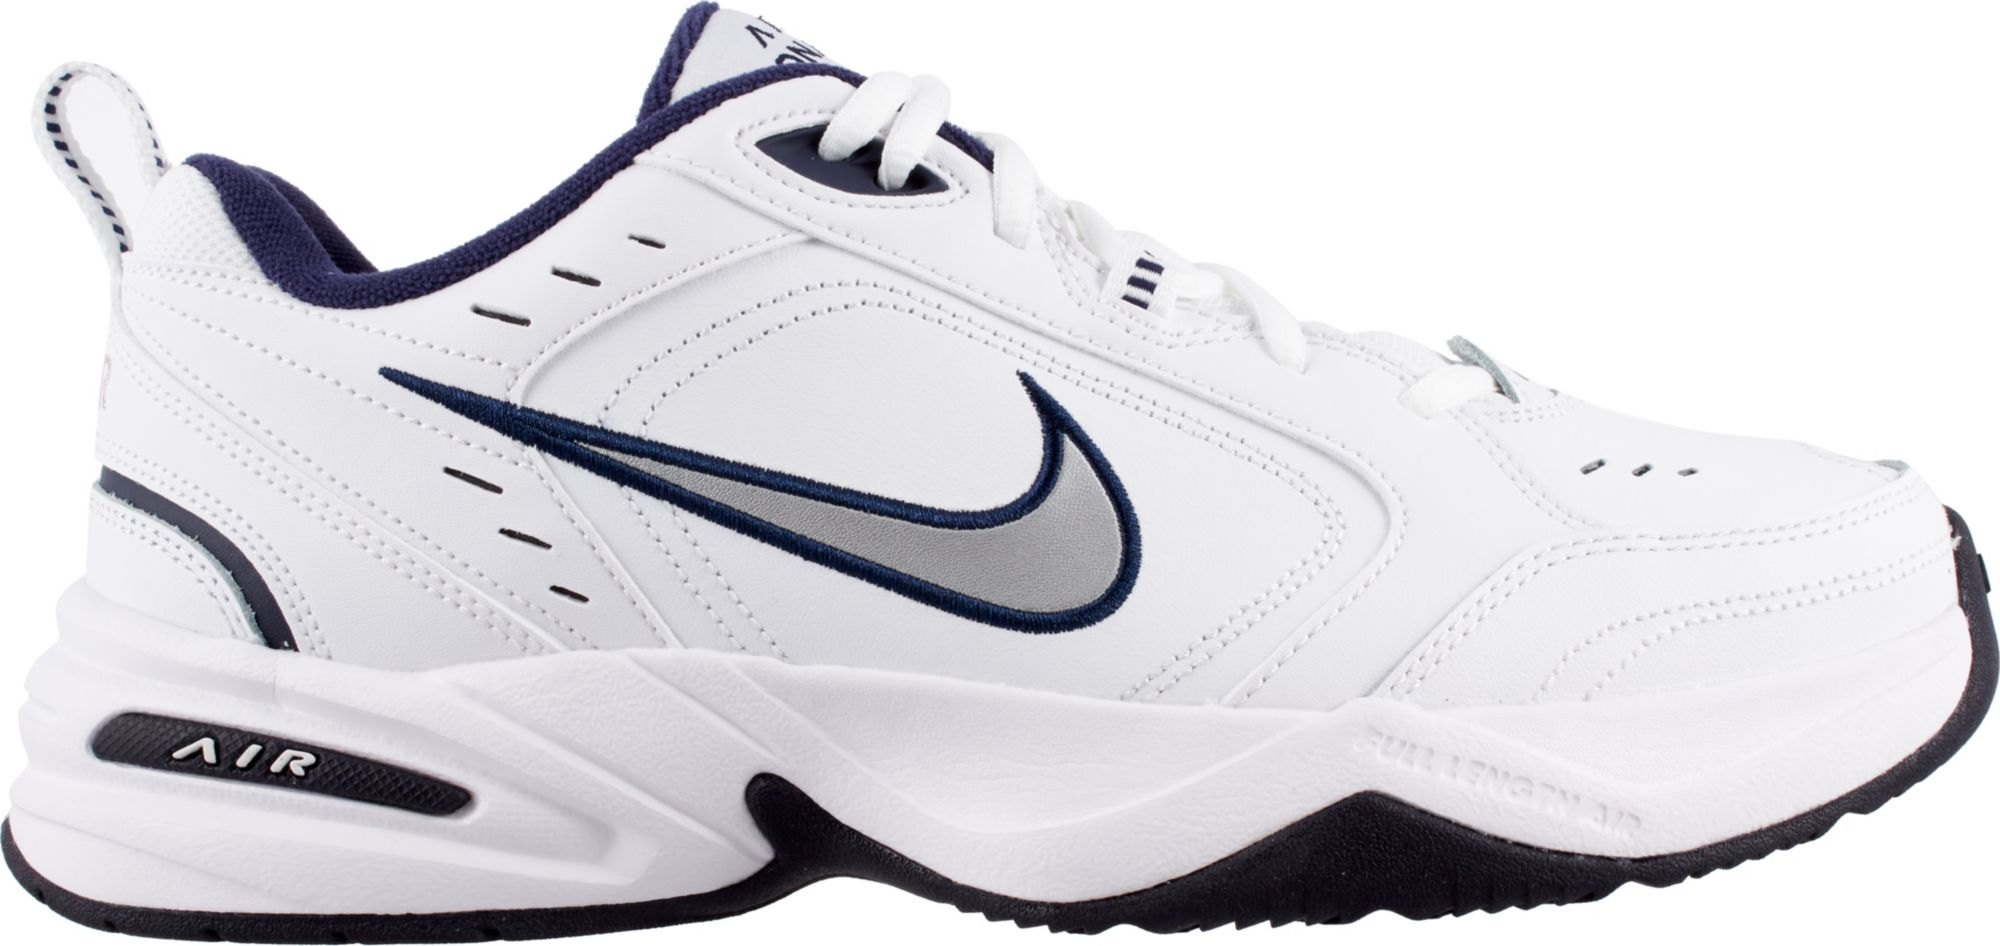 PAUSE's Sneaker of the Week: The Nike Air Monarch IV